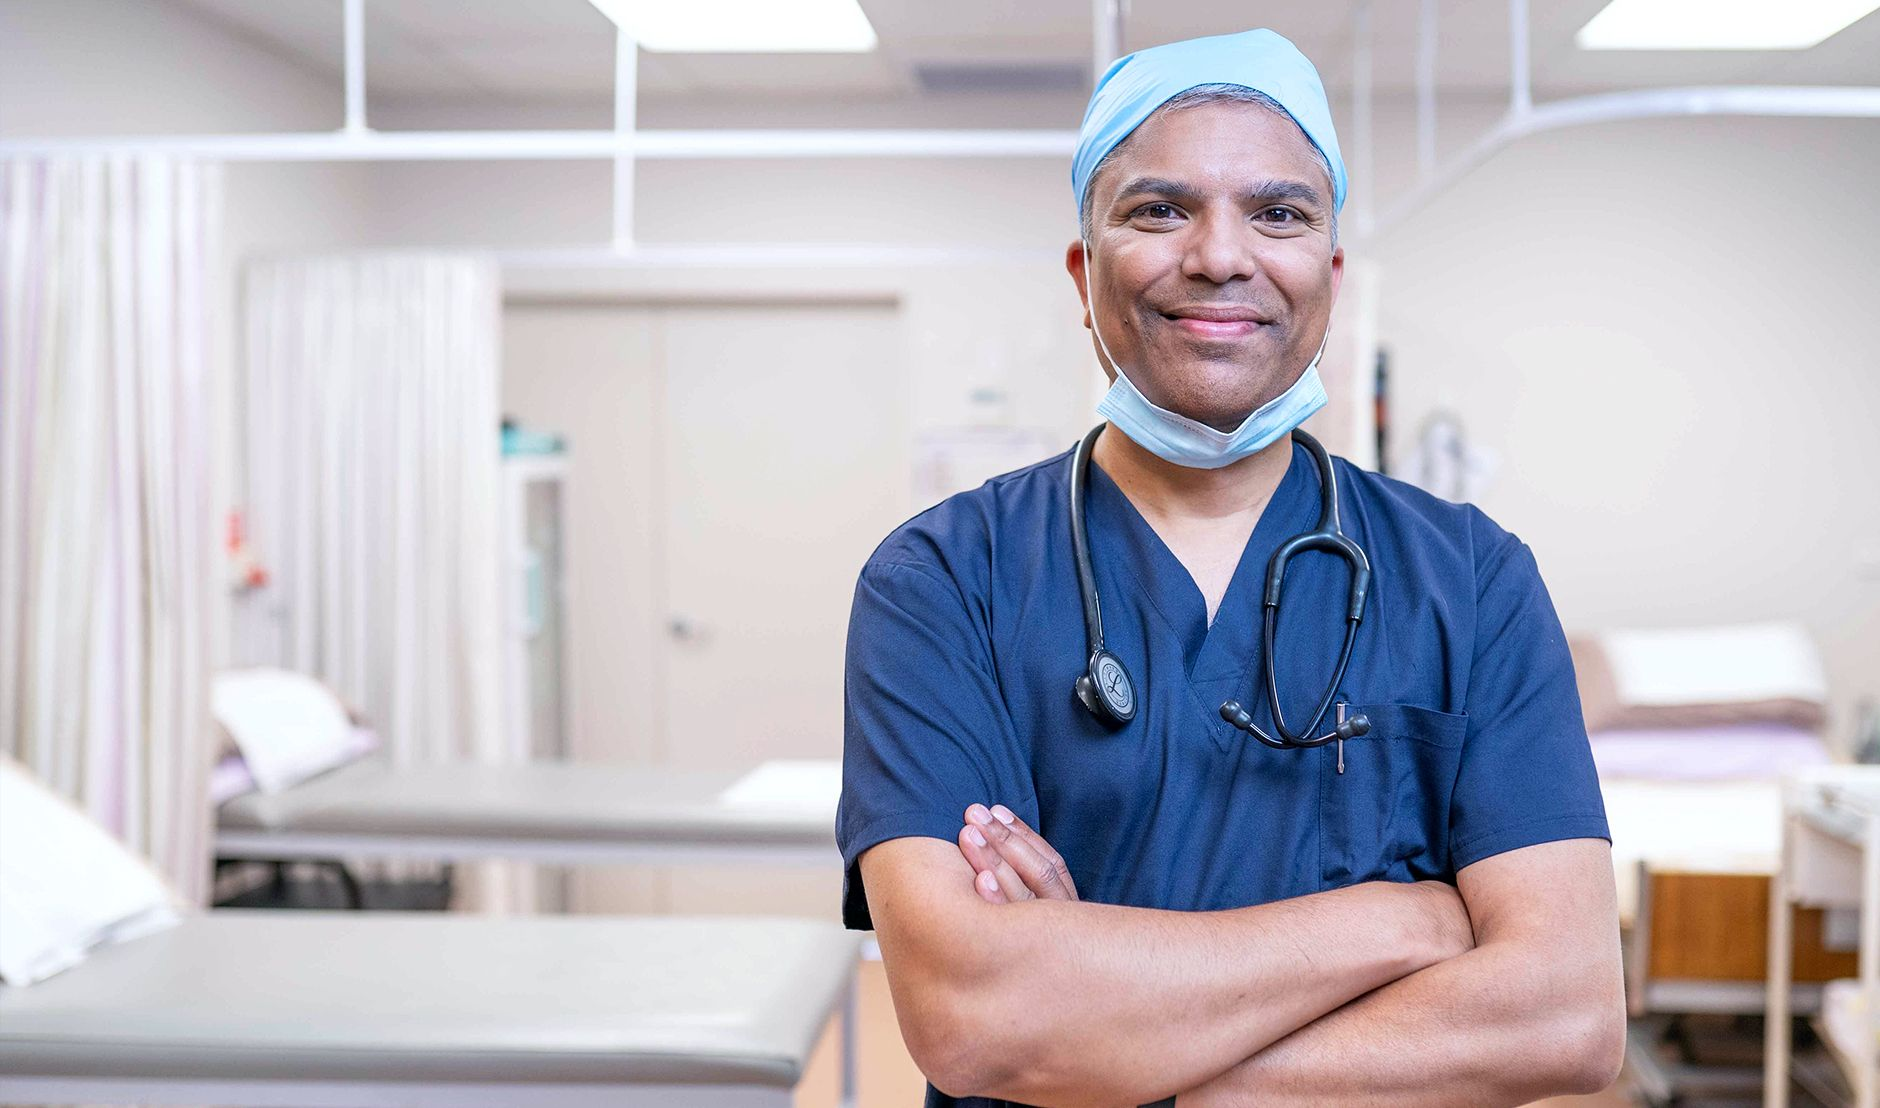 Dr Kevin Naidoo - working as a locum surgeon